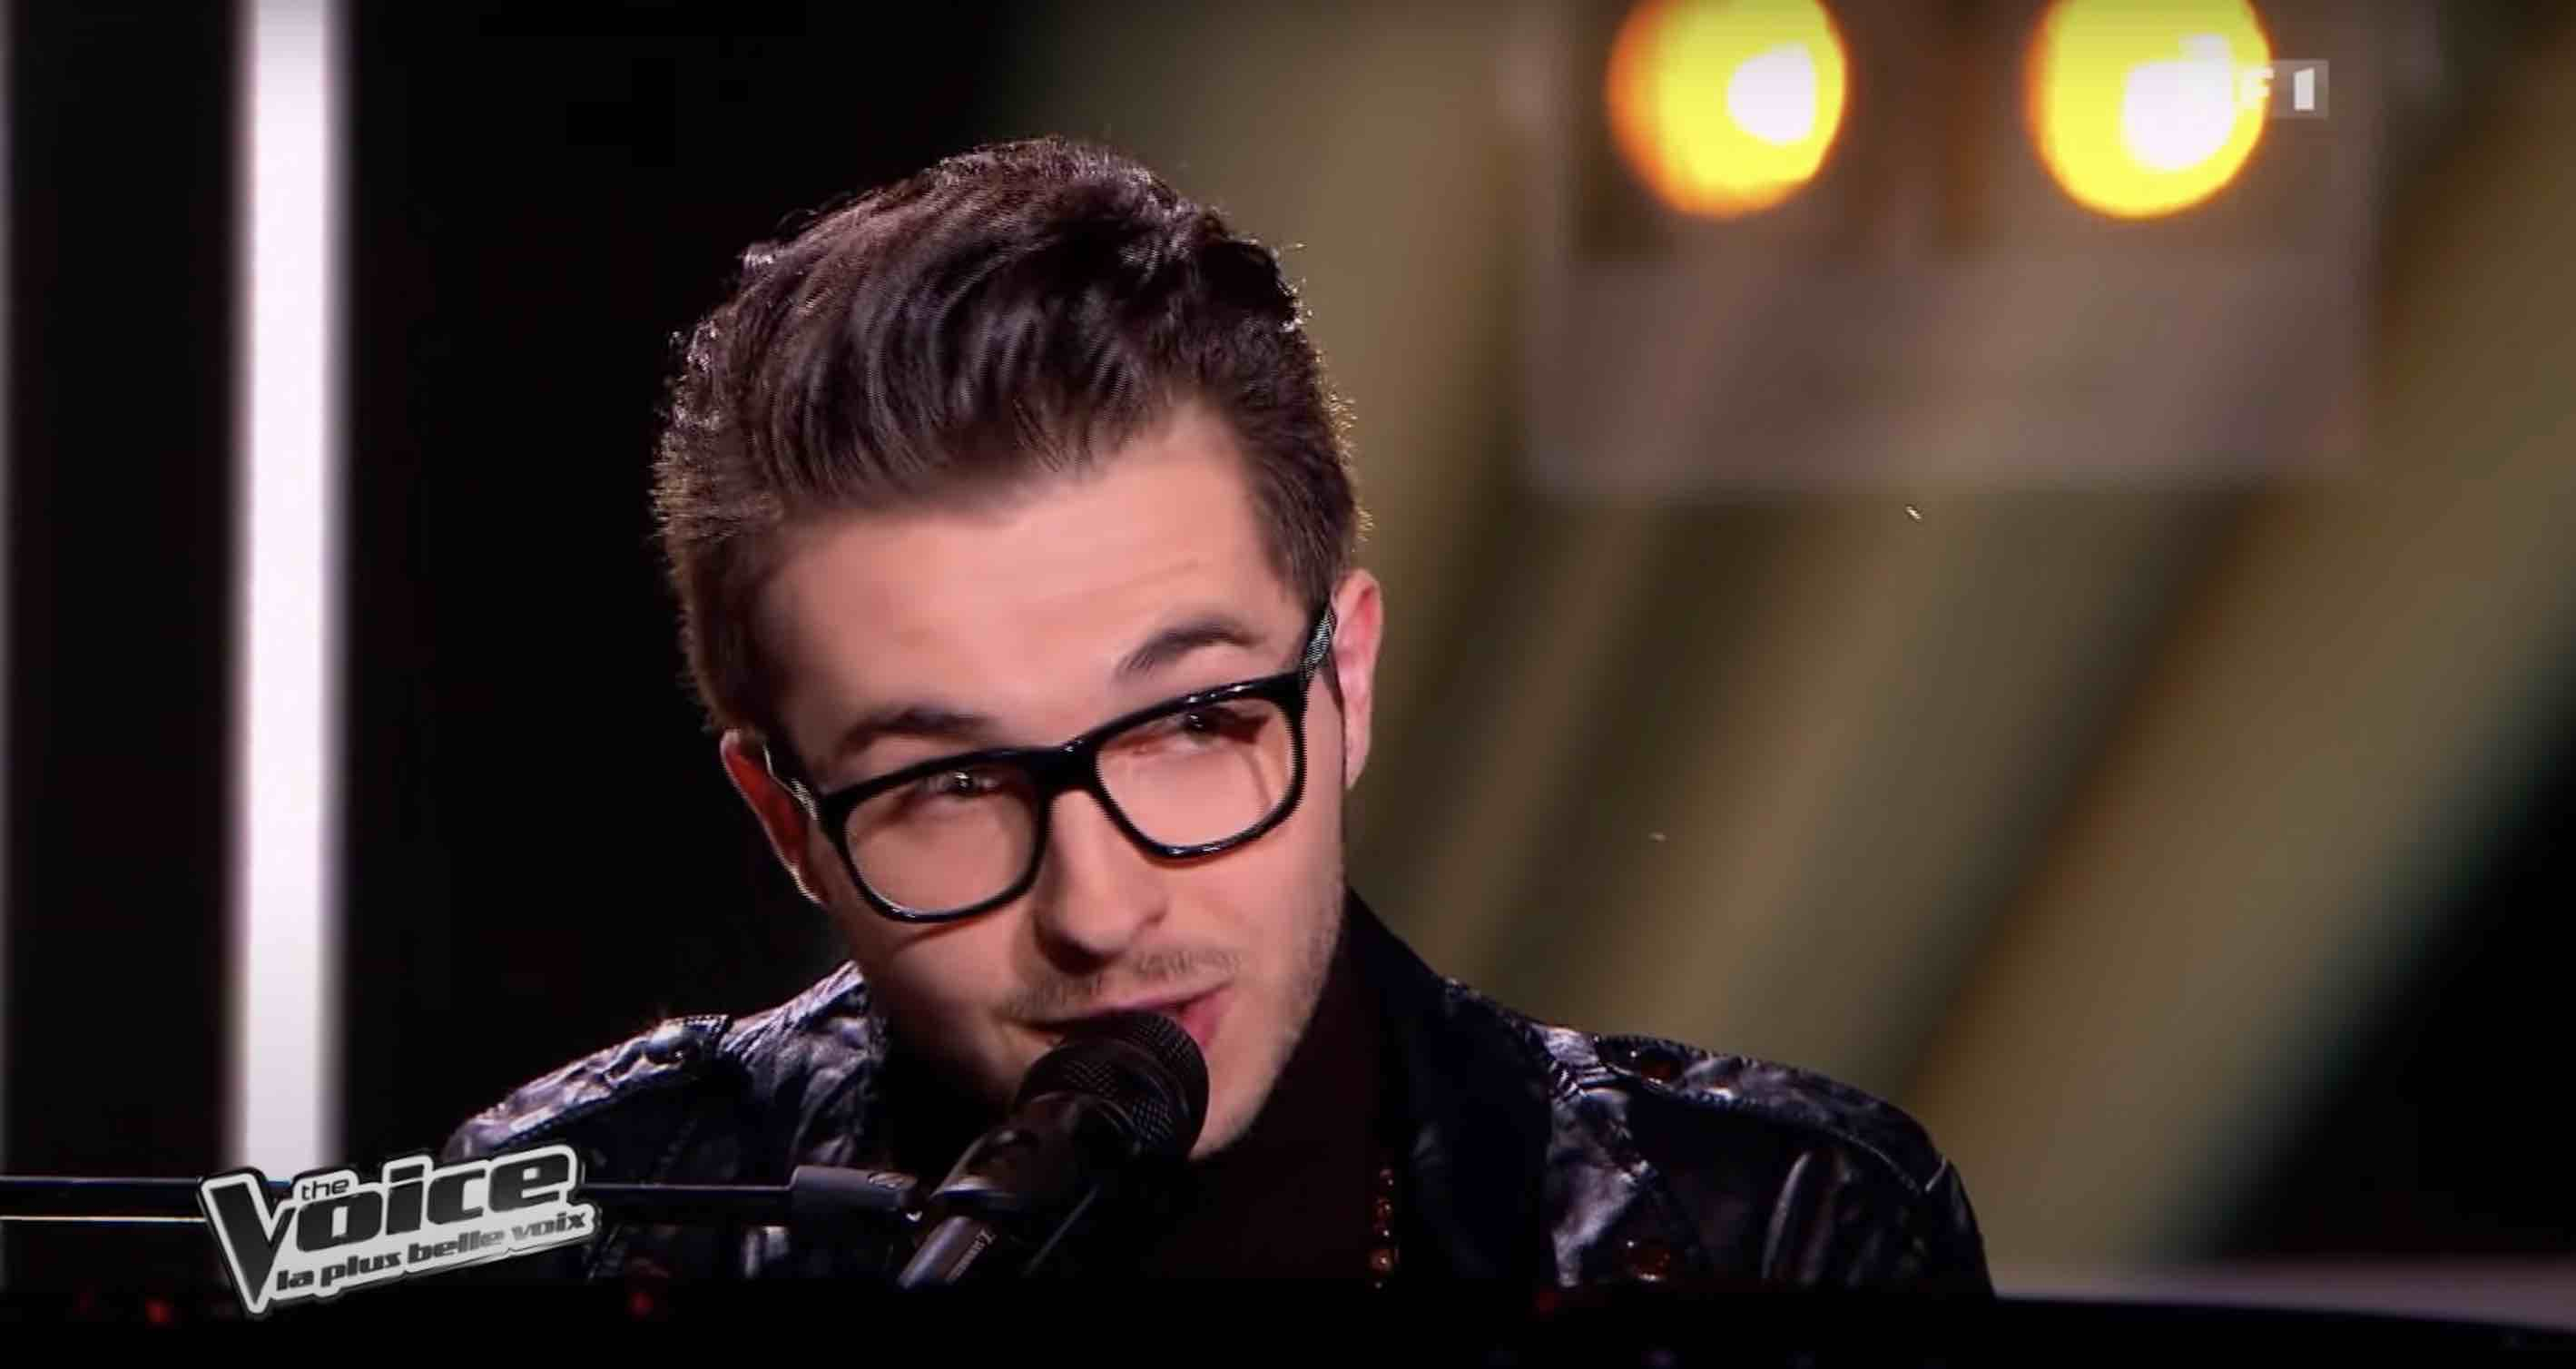 Olympe - The Voice - Born to die -